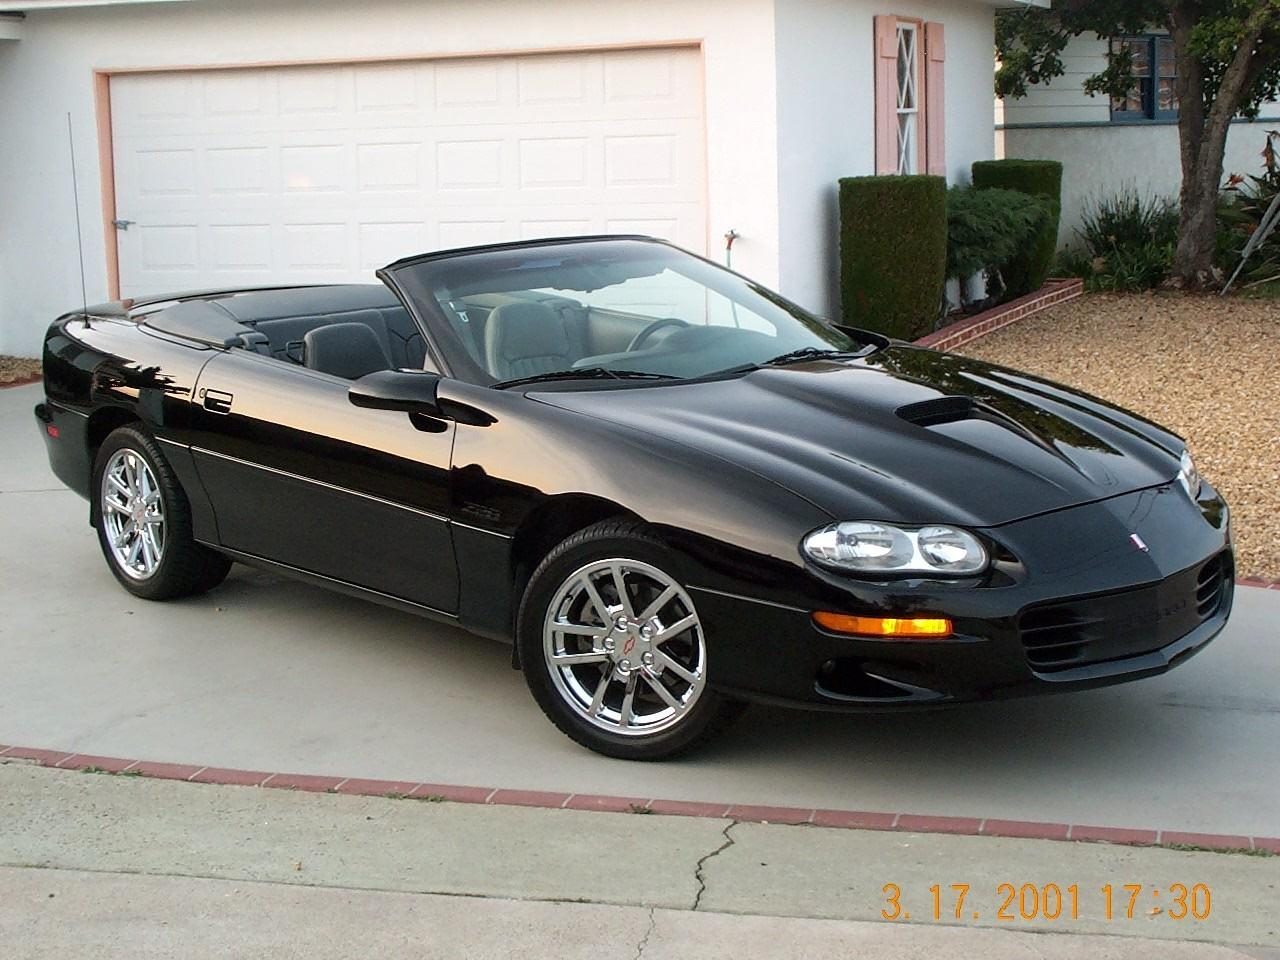 2000 camaro ss with corvette wheels submited images